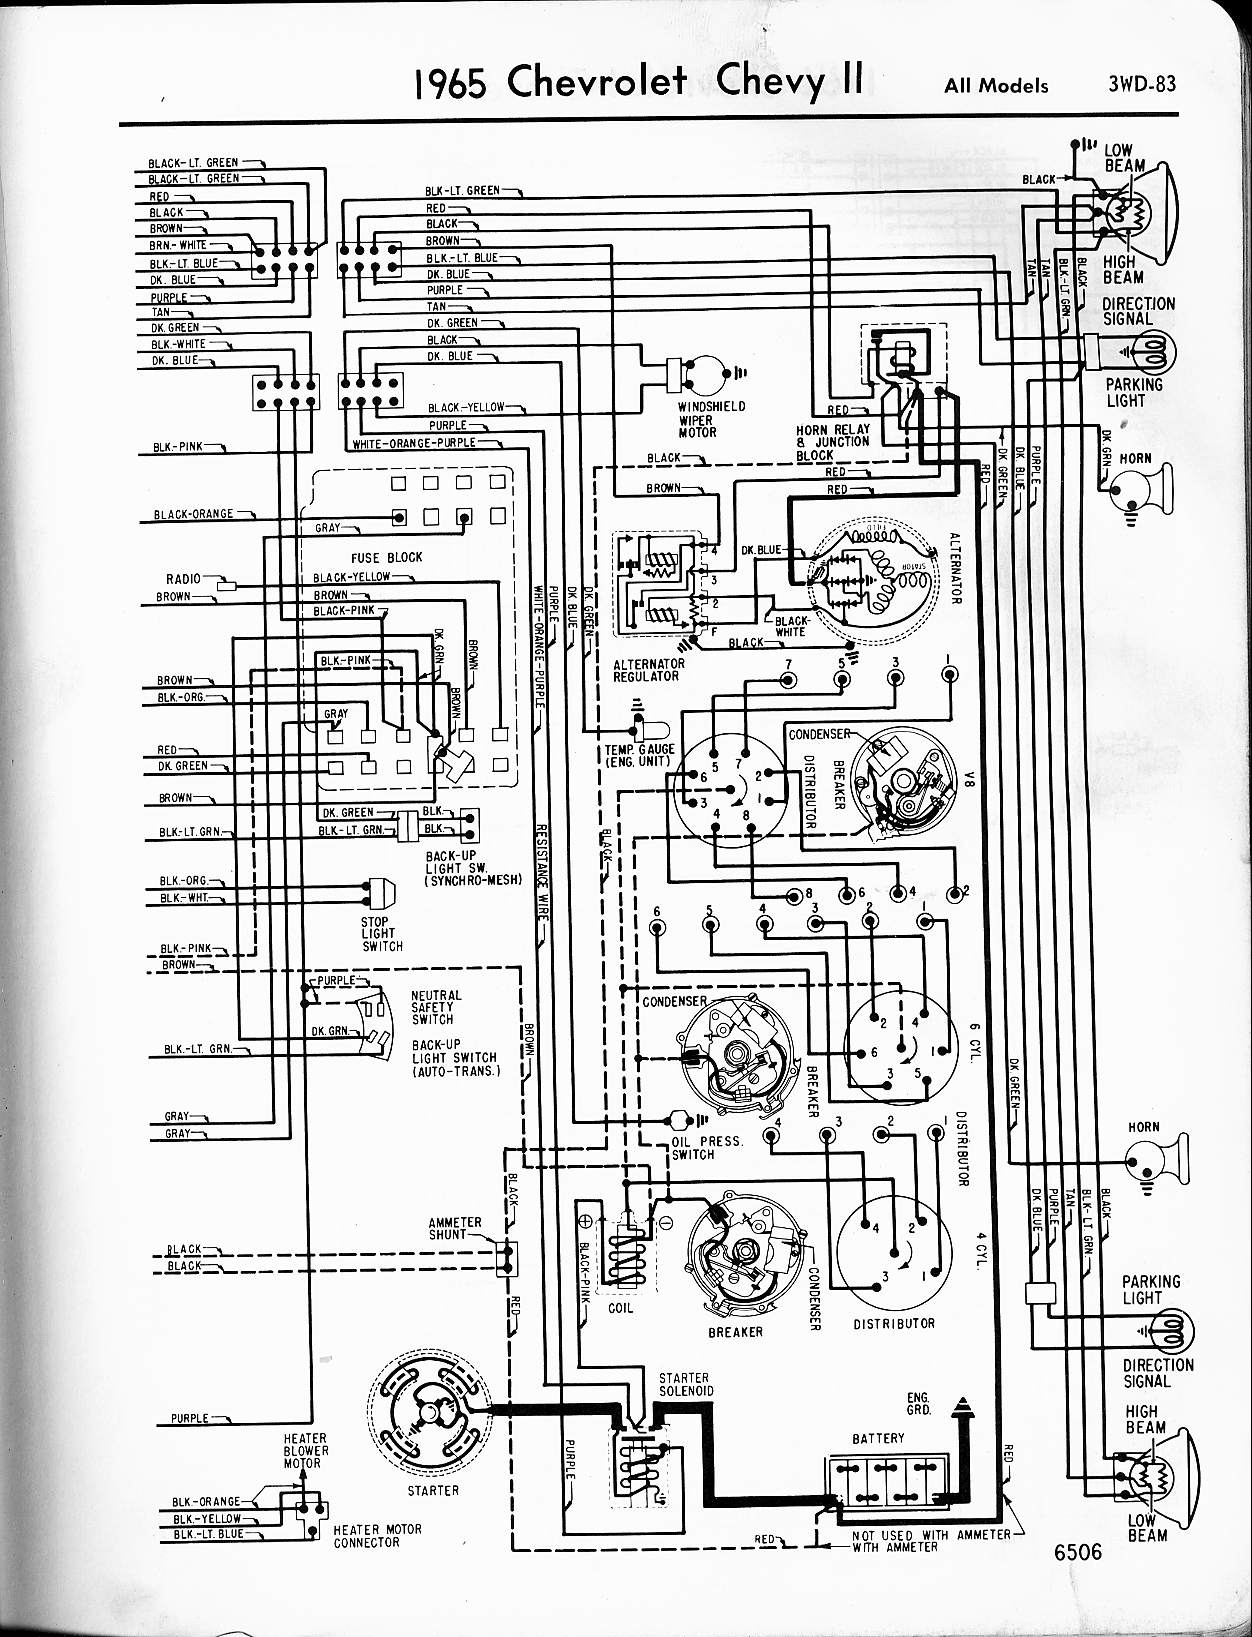 1970 Malibu Wiring Diagram Bookmark About Mercruiser Diagrams 1965 Chevy Chevelle Free For You U2022 Rh Six Designenvy Co